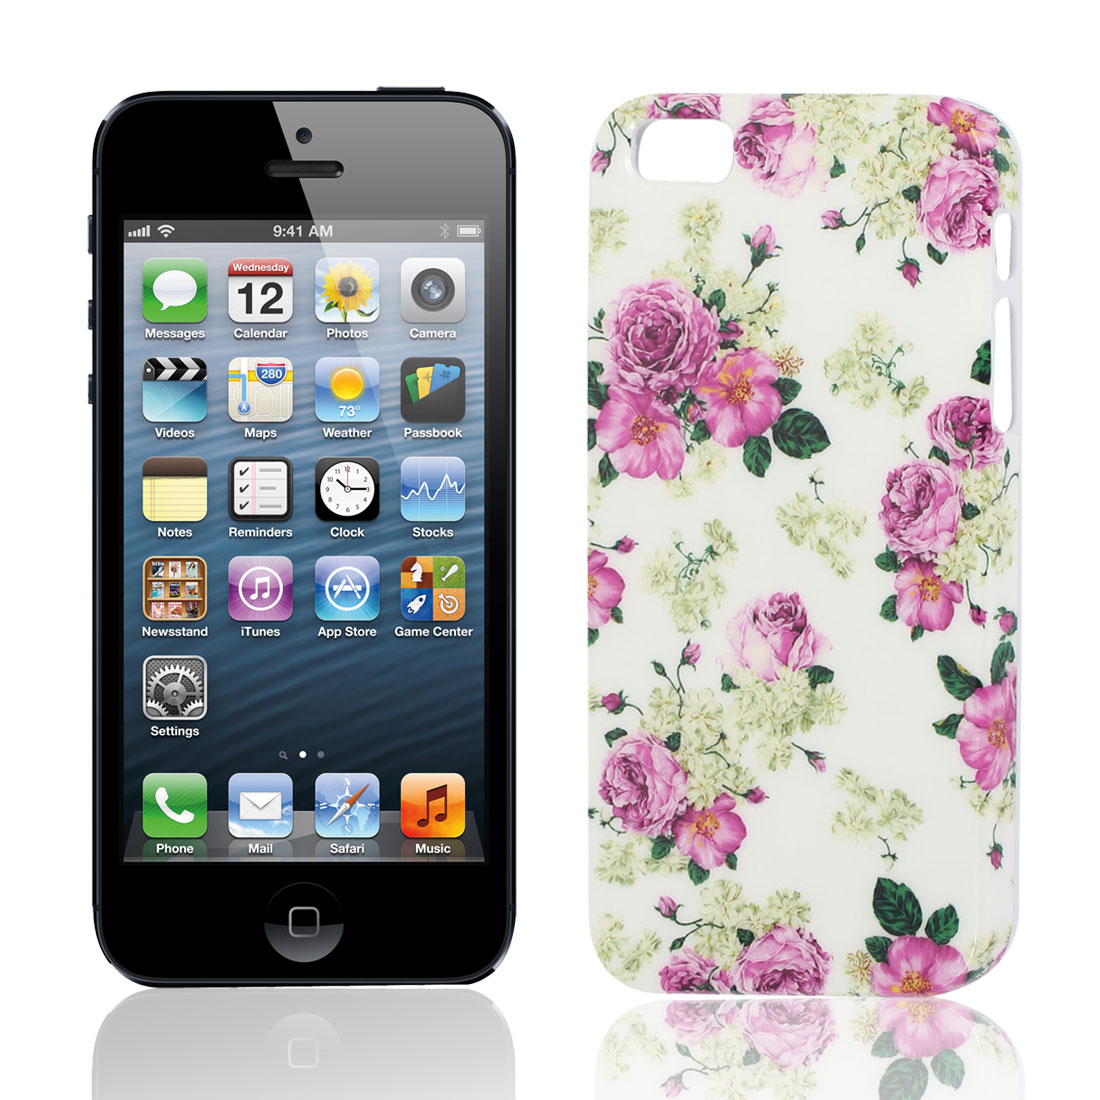 Fuchsia Green White Flower Printed Hard Plastic Case Cover for iPhone 5 5G 5S